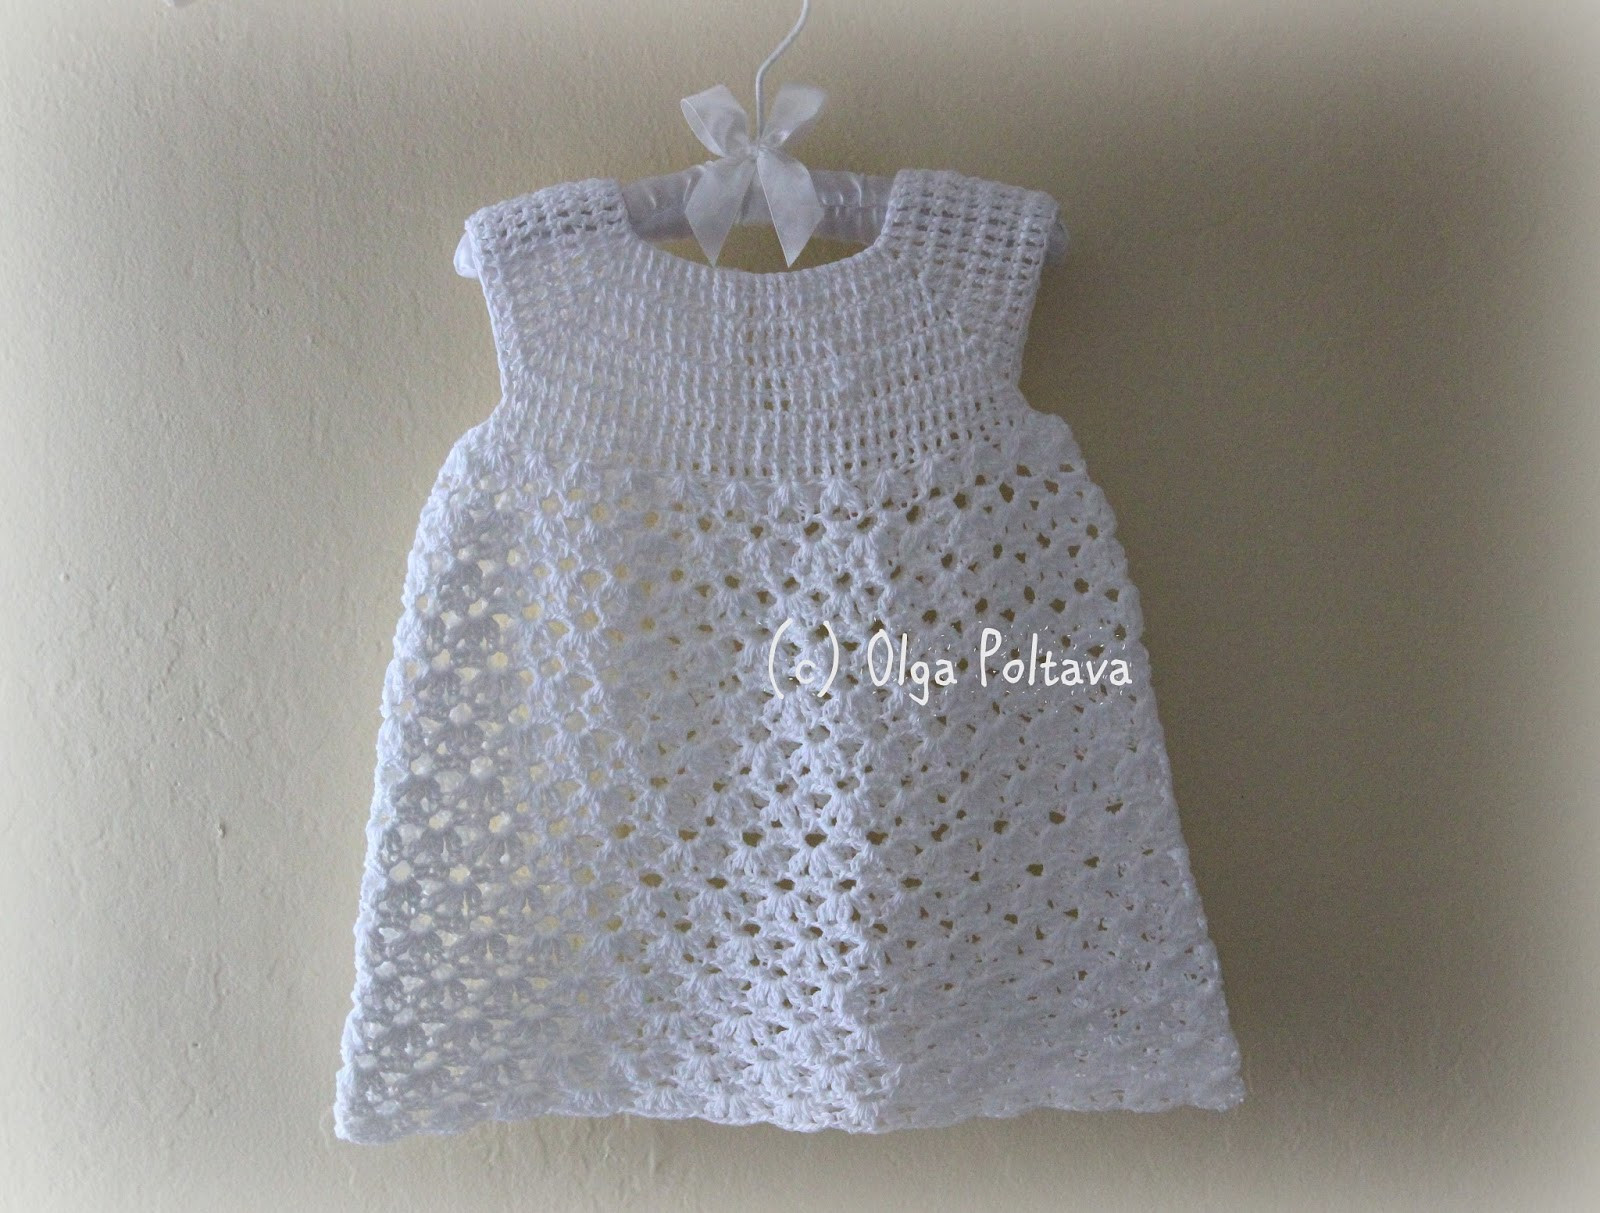 Elegant Lacy Crochet Two New Patterns Baby Dress and Girls Hat Crochet Baby Clothes Patterns Of Amazing 44 Pictures Crochet Baby Clothes Patterns